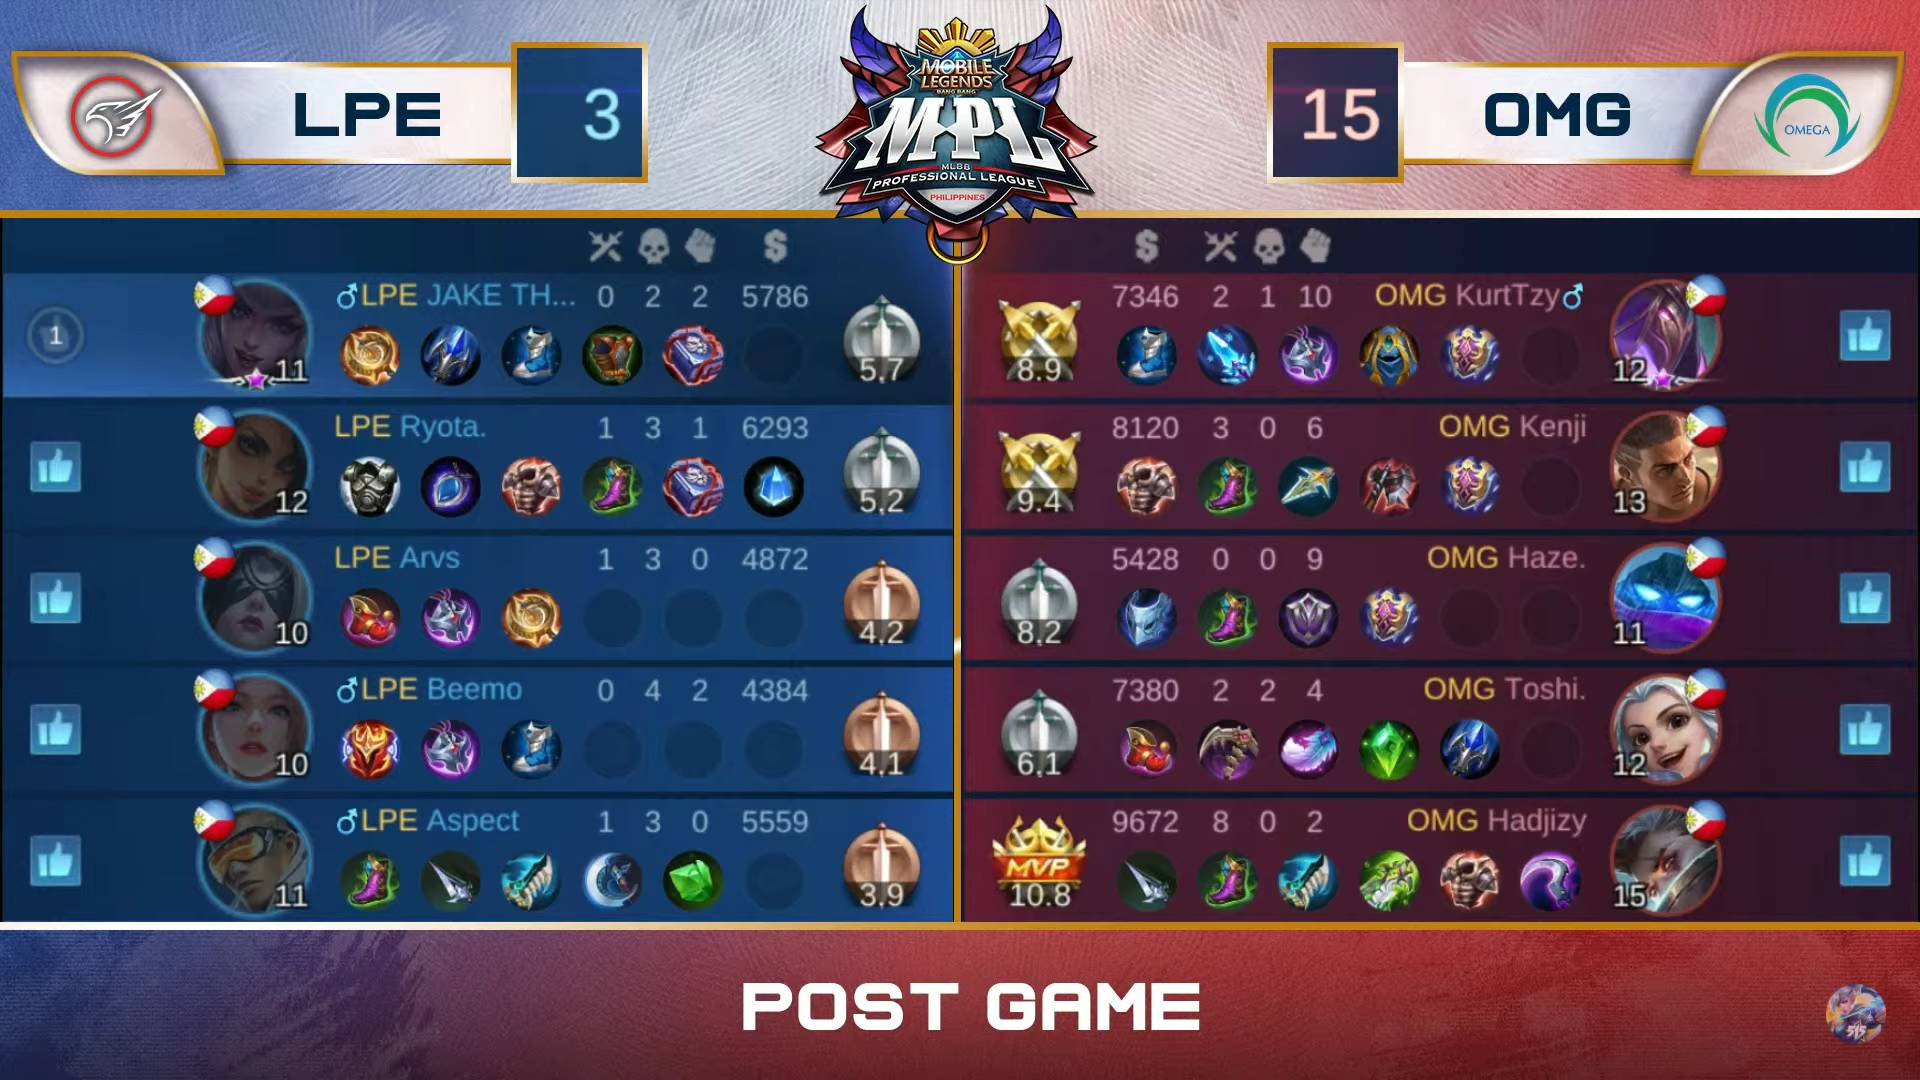 MPL-PH-7-Playbook-def-Omega-Game-2 Beemo plays hero as Playbook shocks Omega for second win in MPL-PH ESports Mobile Legends MPL-PH News  - philippine sports news